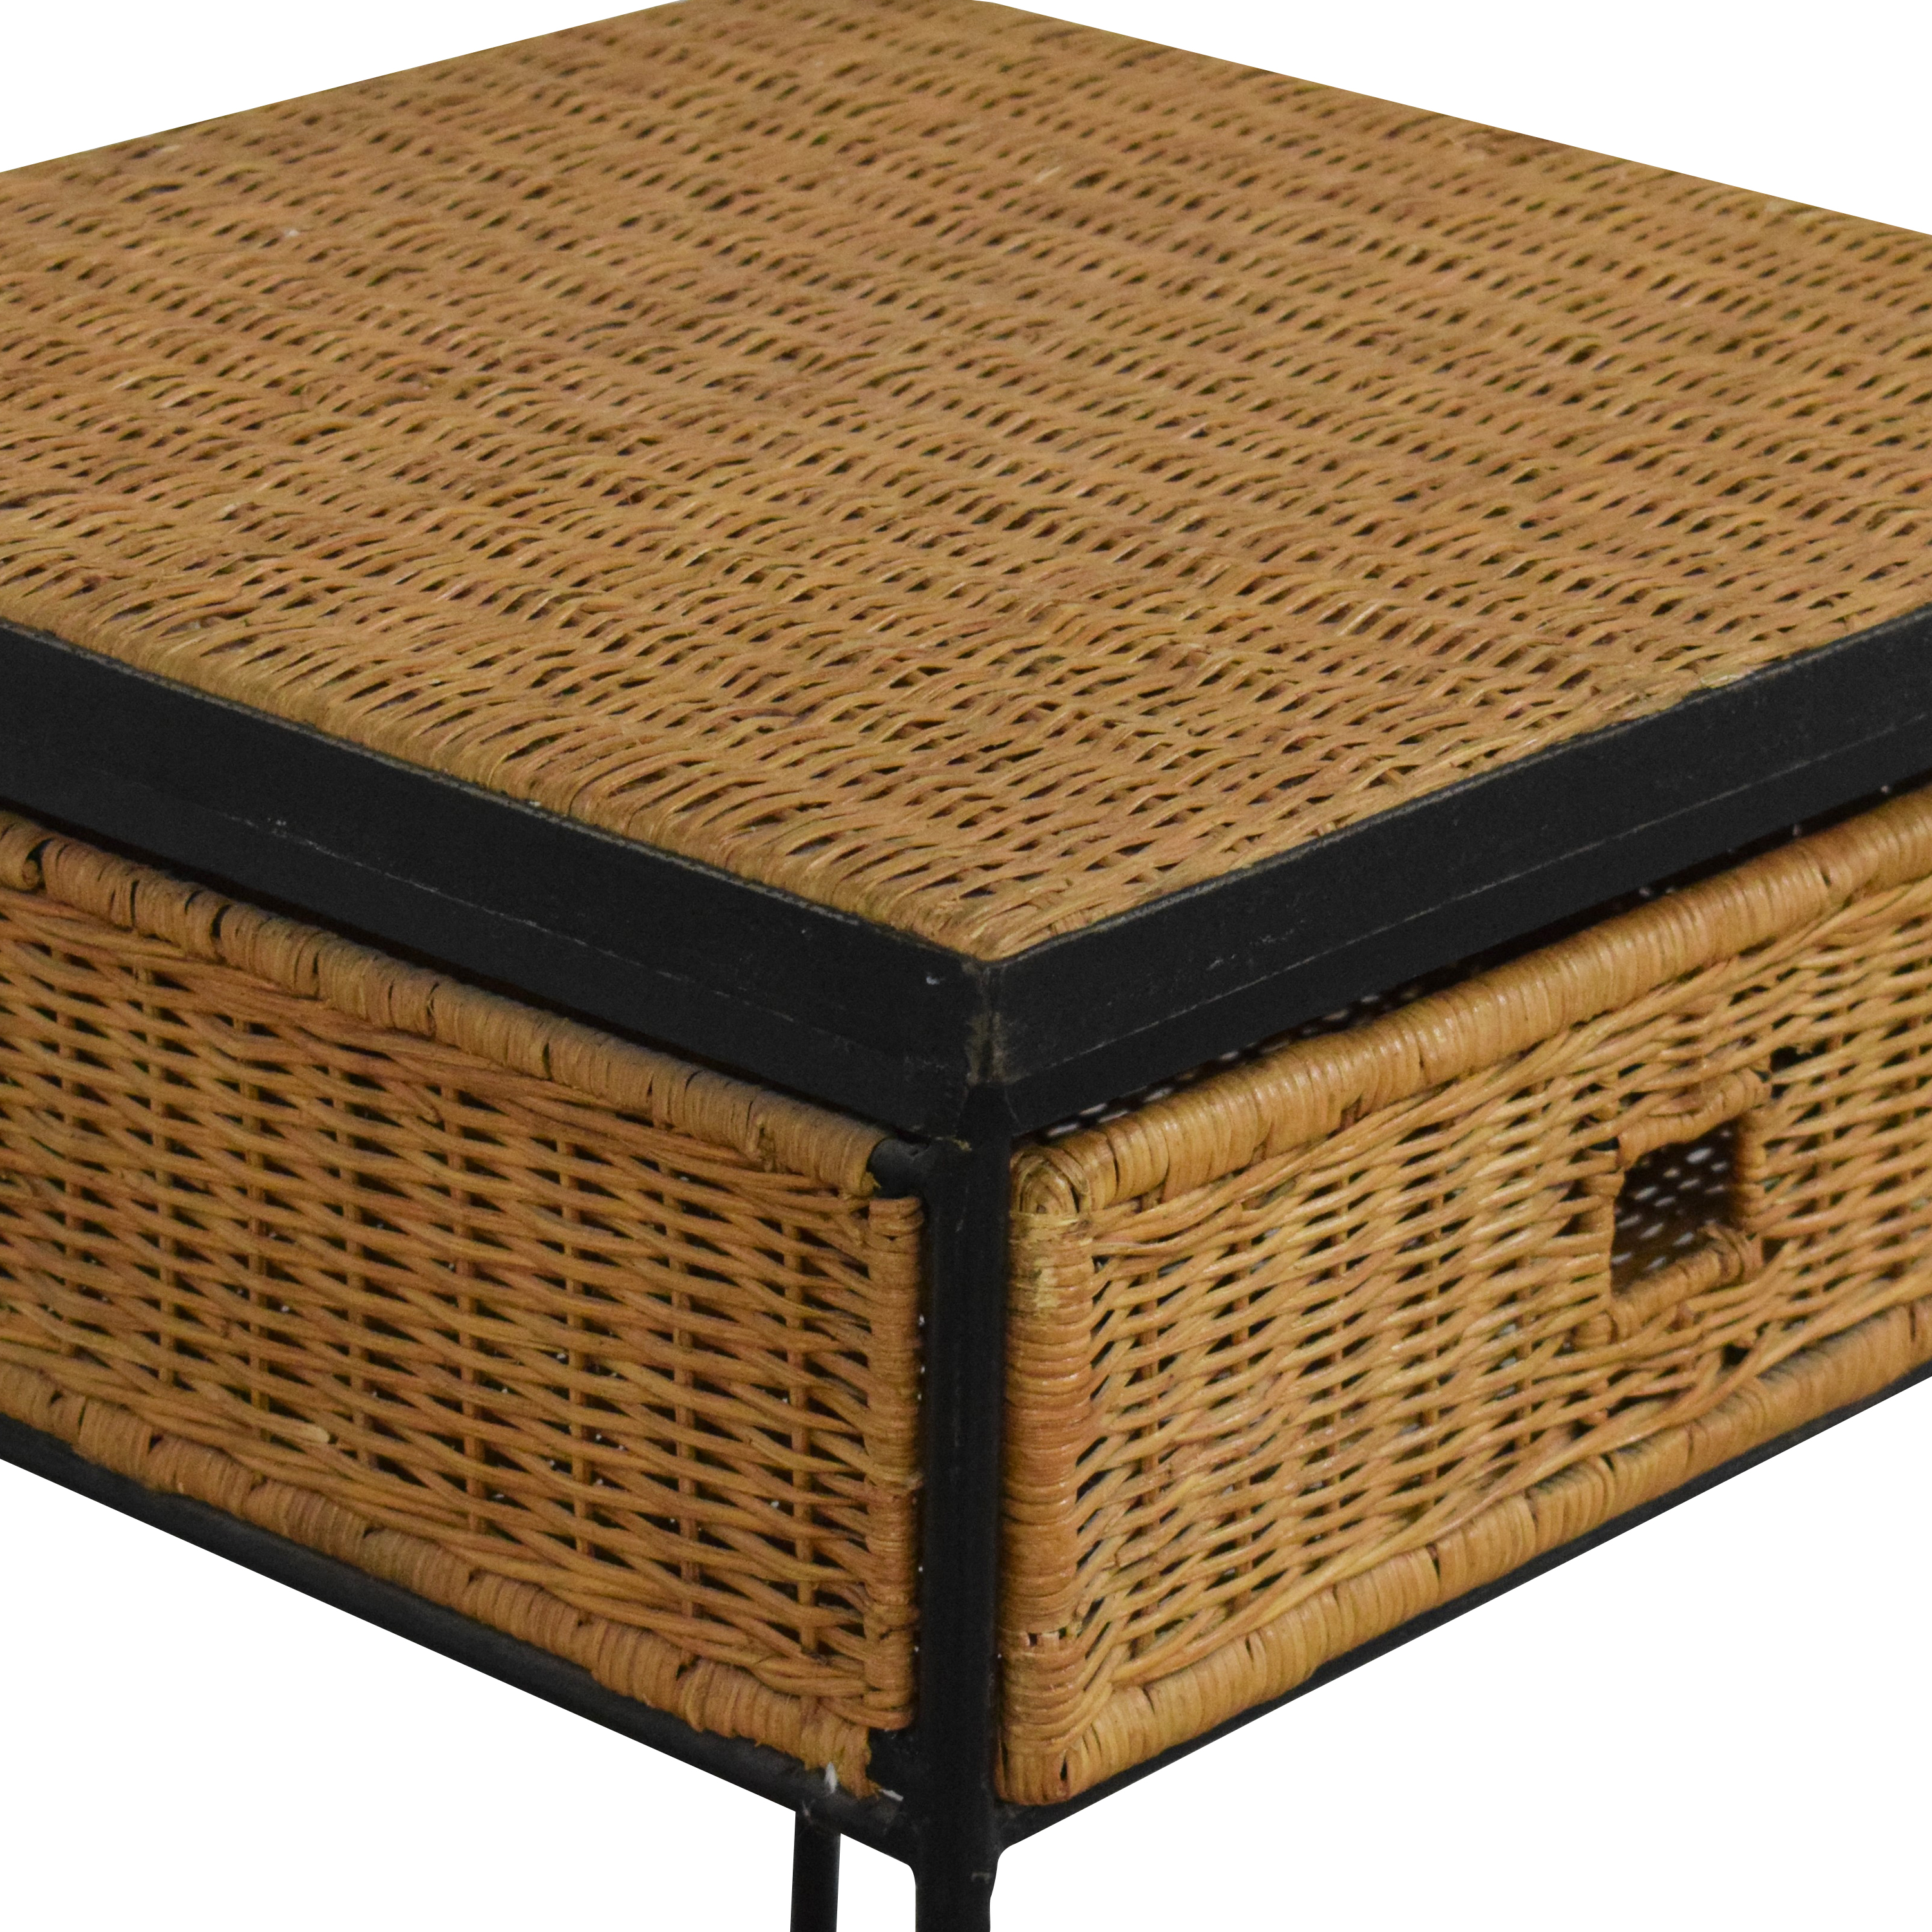 Pottery Barn Pottery Barn Woven End Table price